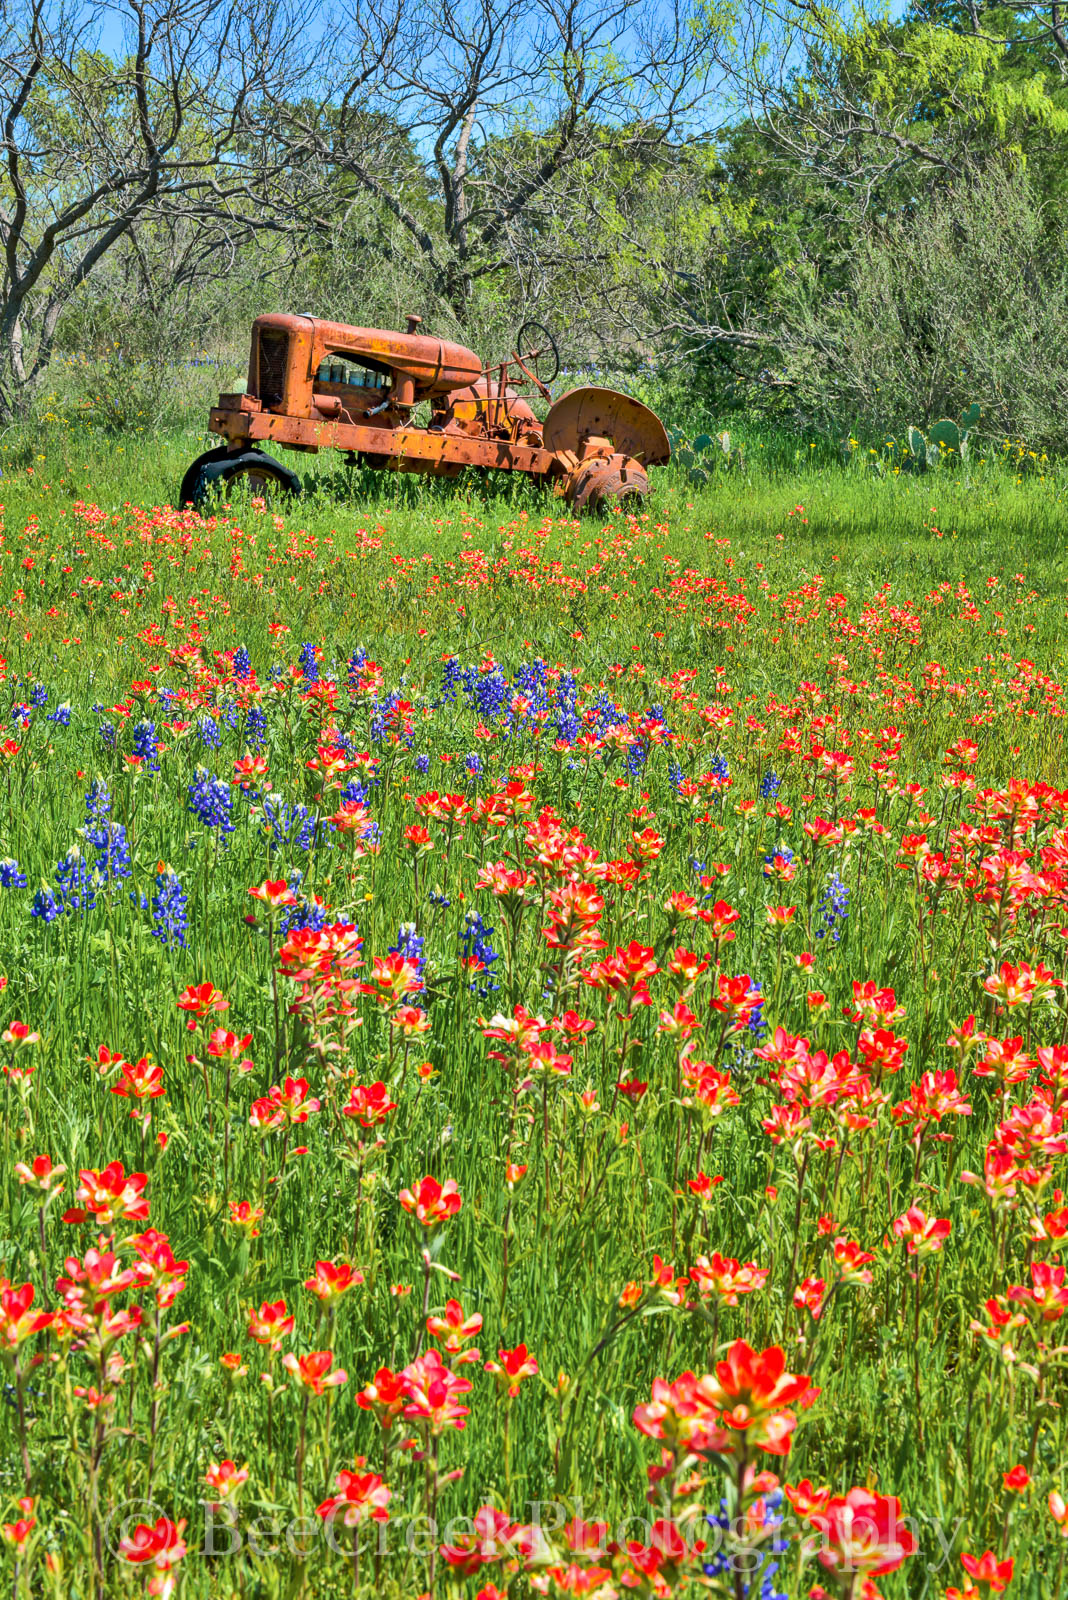 Tractor and Wildflowers-We capture several images of this old rusting tractor in a field of bluebonnets and indian...